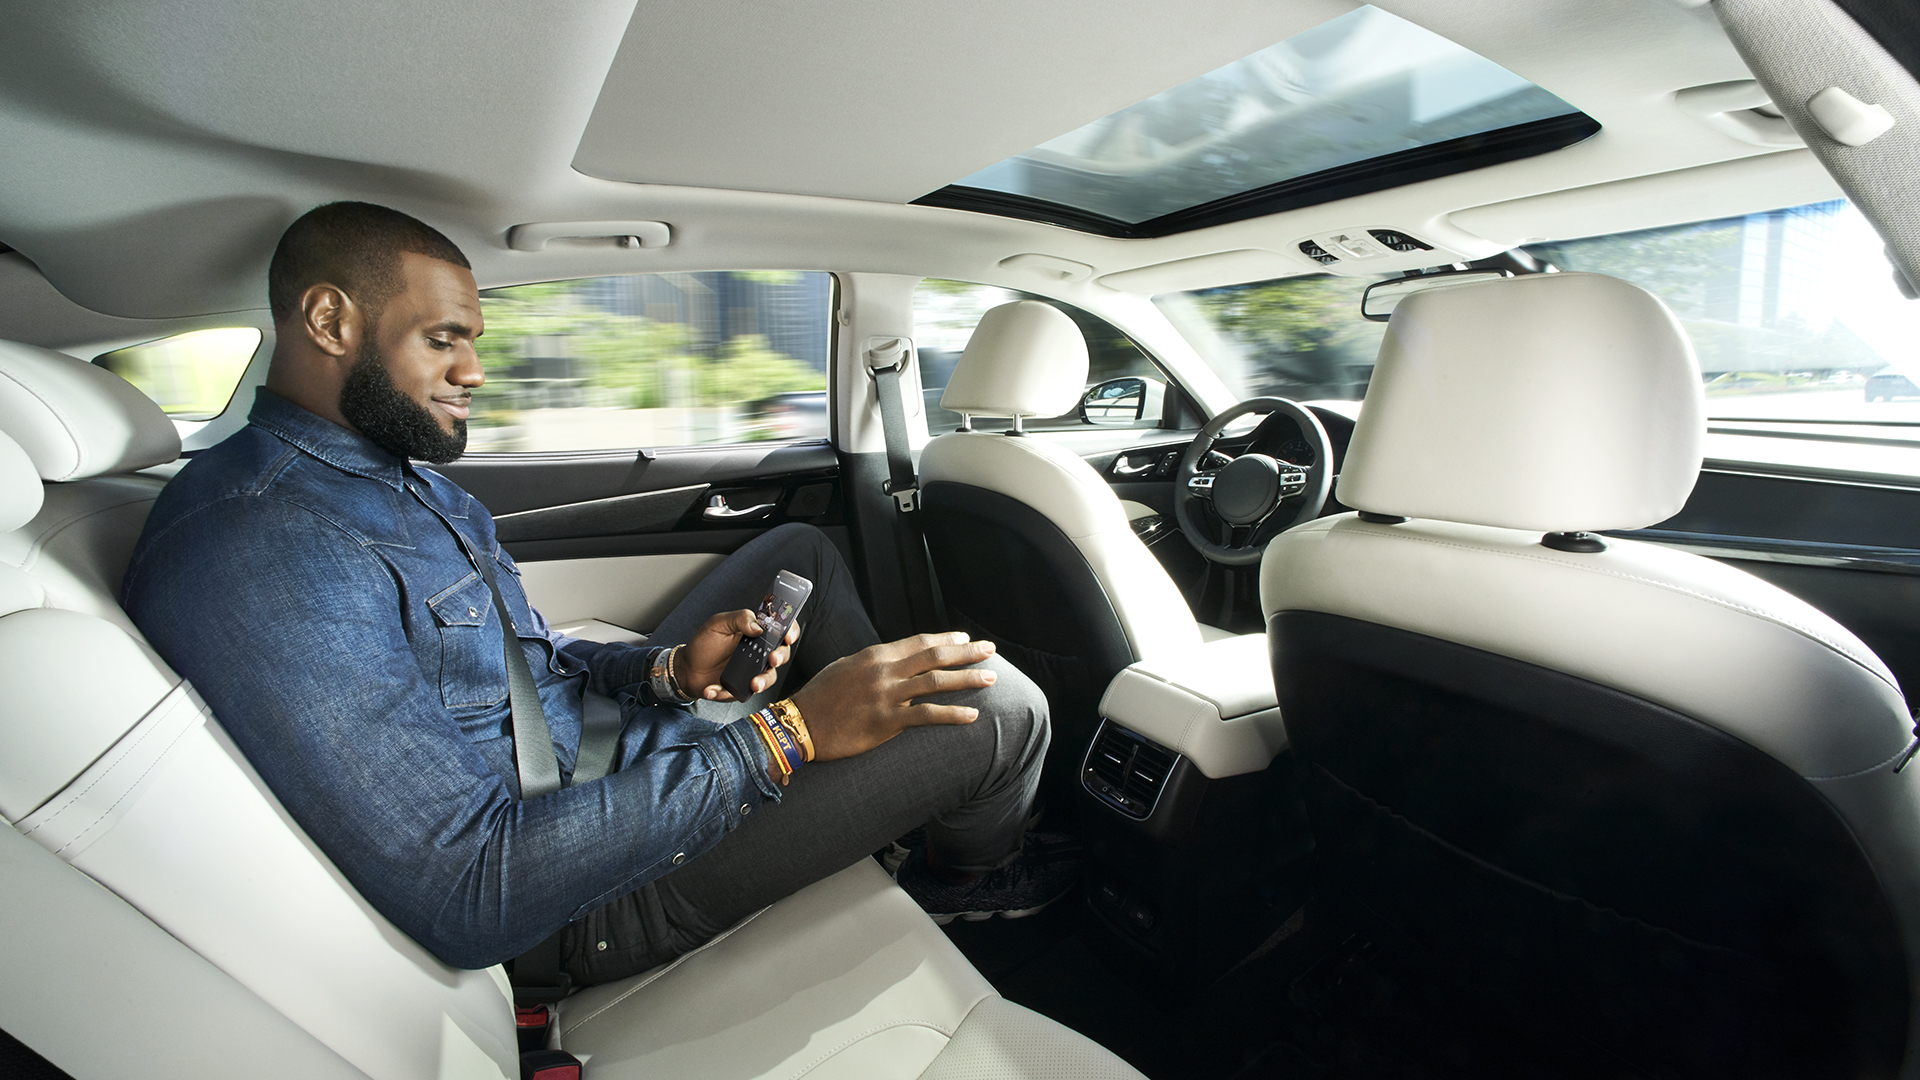 NBA star LeBron James is featured in an Intel ad that aims to build trust in self-driving cars.